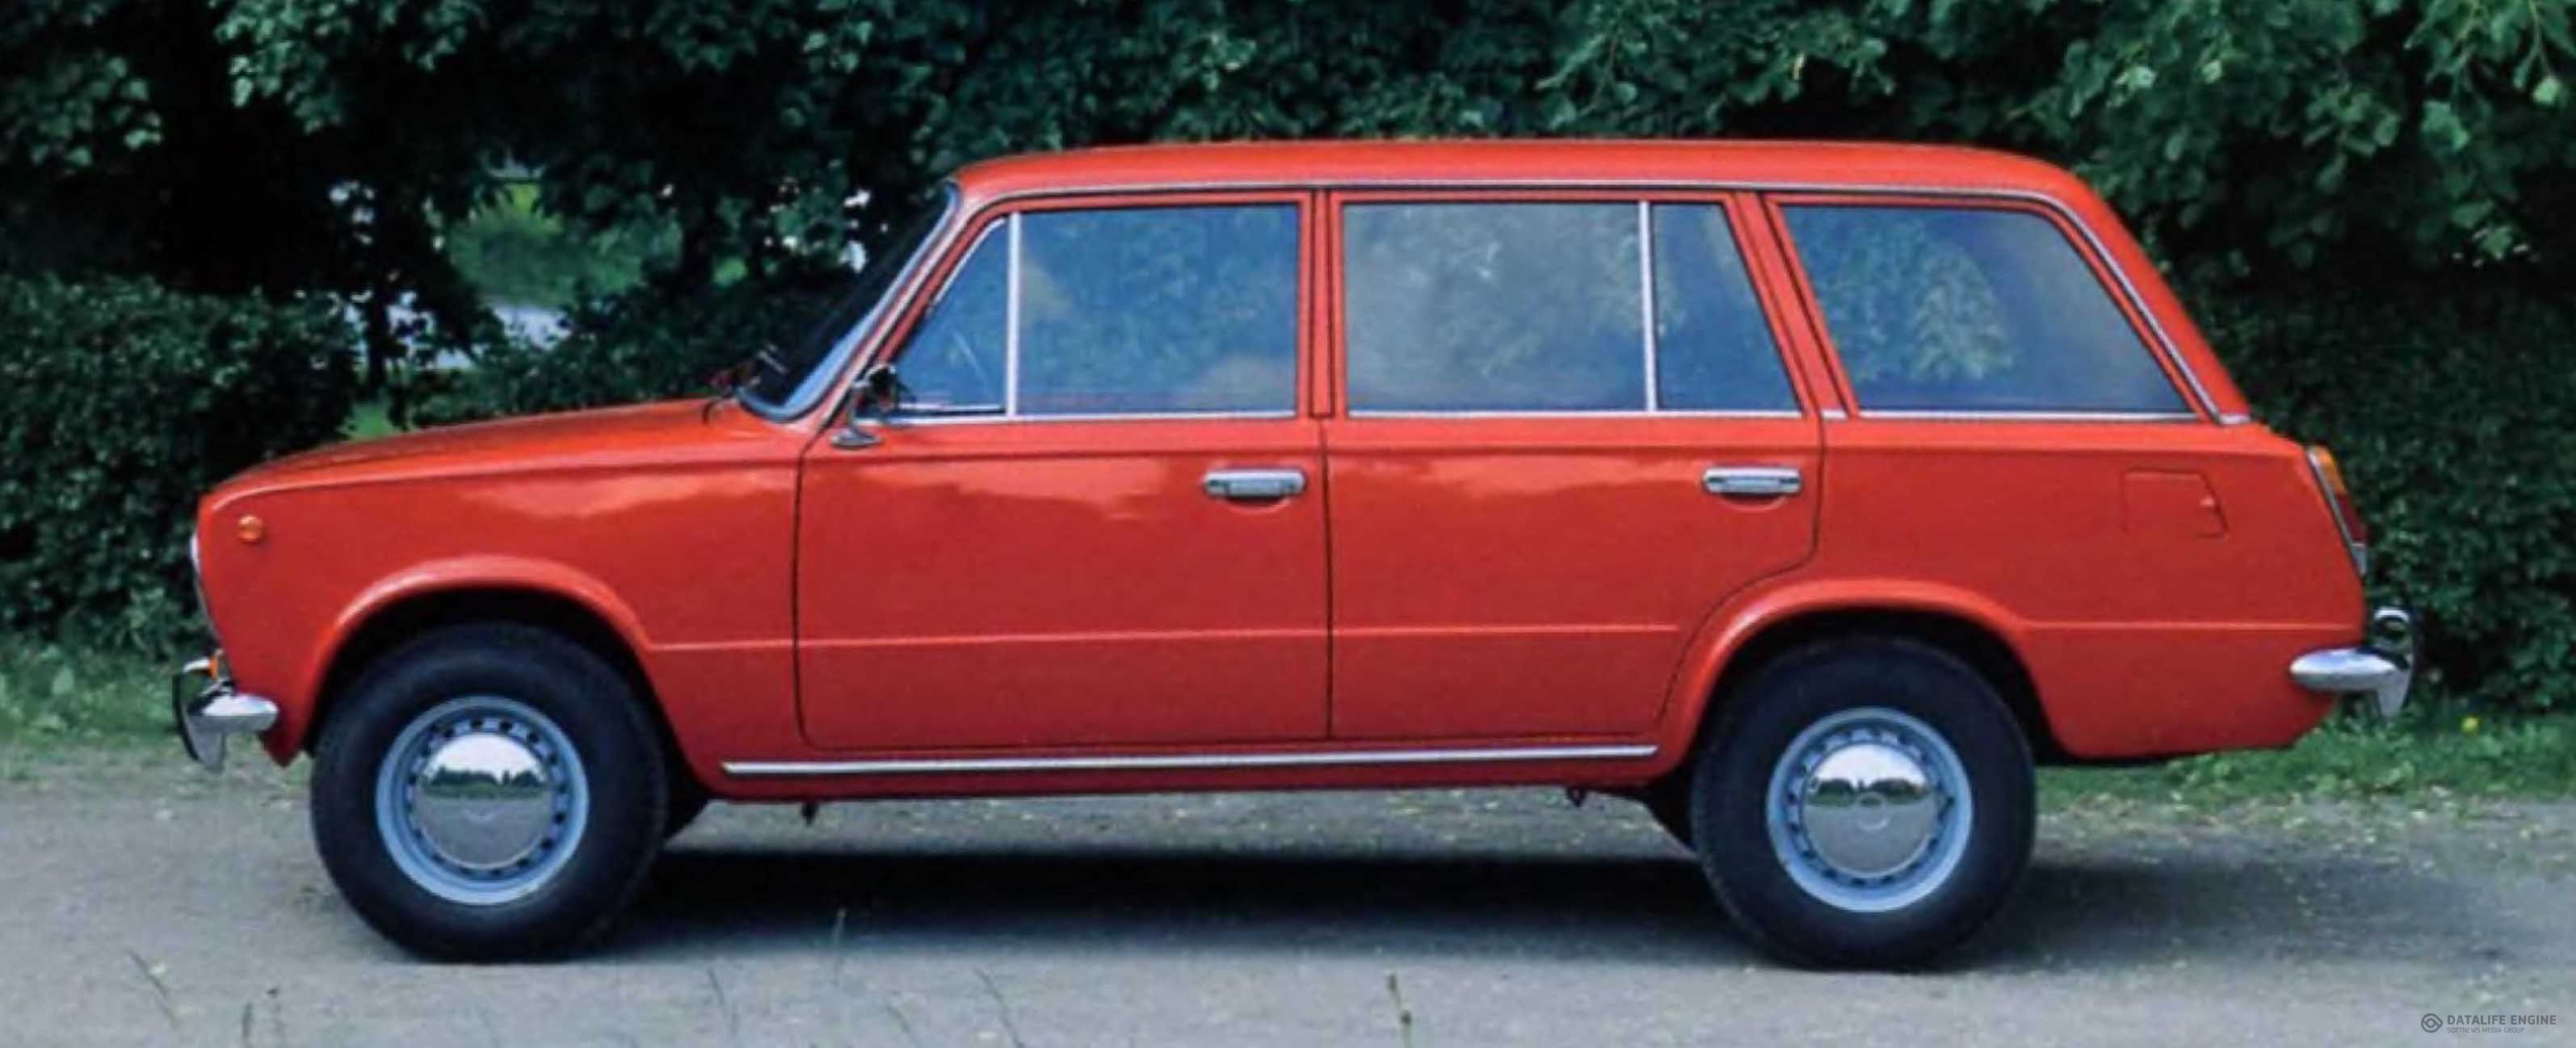 VAZ-2102 (estate version of the 2101)